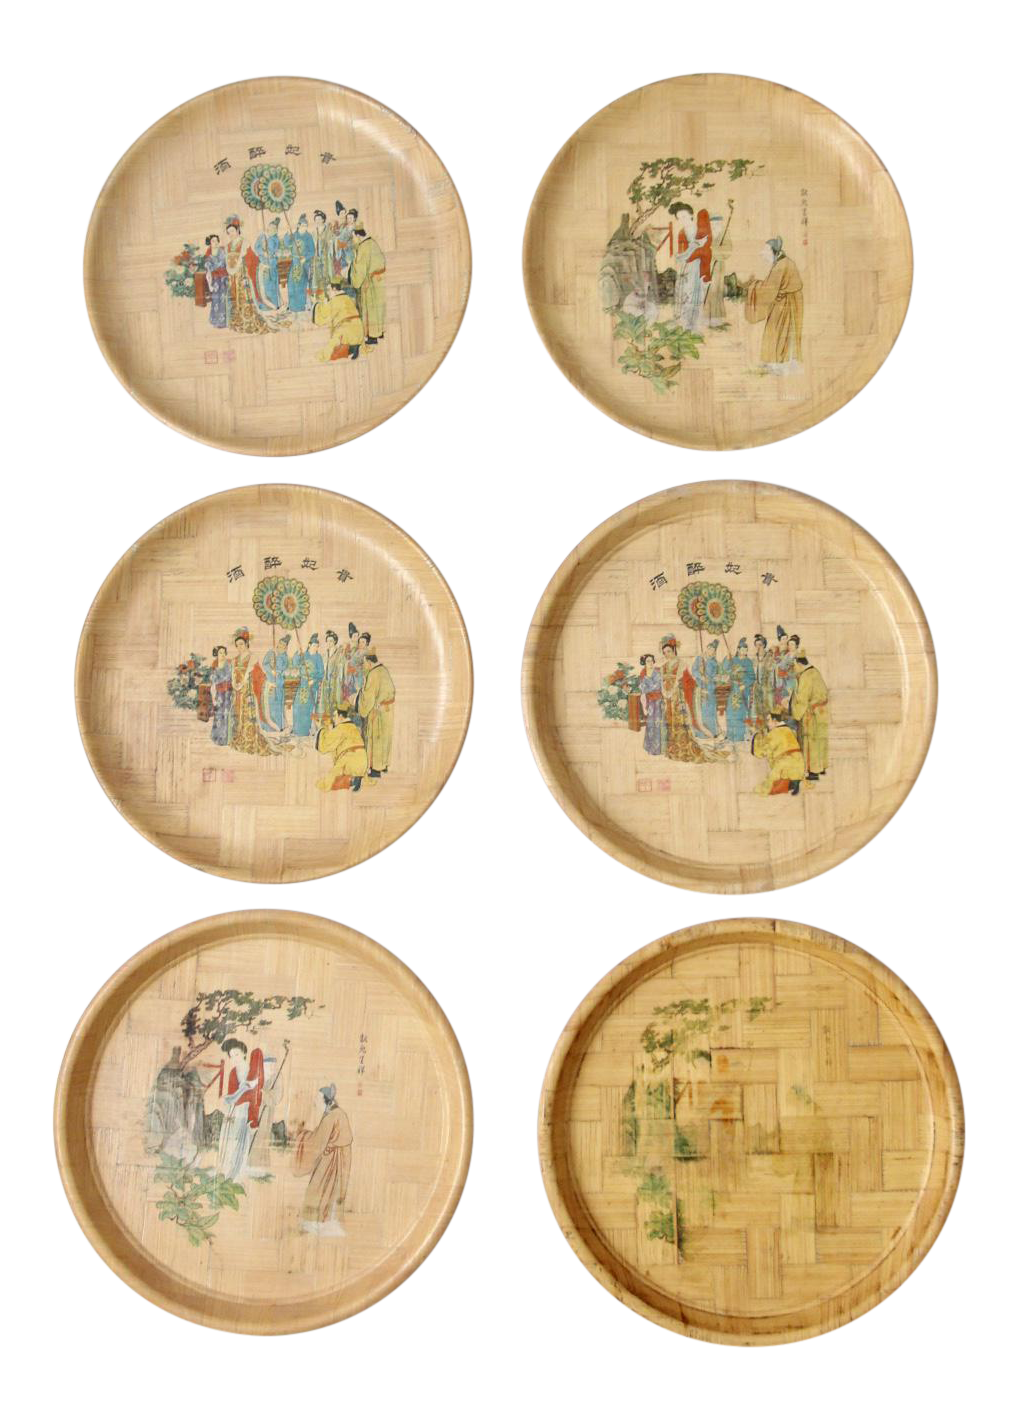 Vintage Chinese Bamboo Painted Plates - Set of 6  sc 1 st  Chairish & Vintage Chinese Bamboo Painted Plates - Set of 6 | Chairish